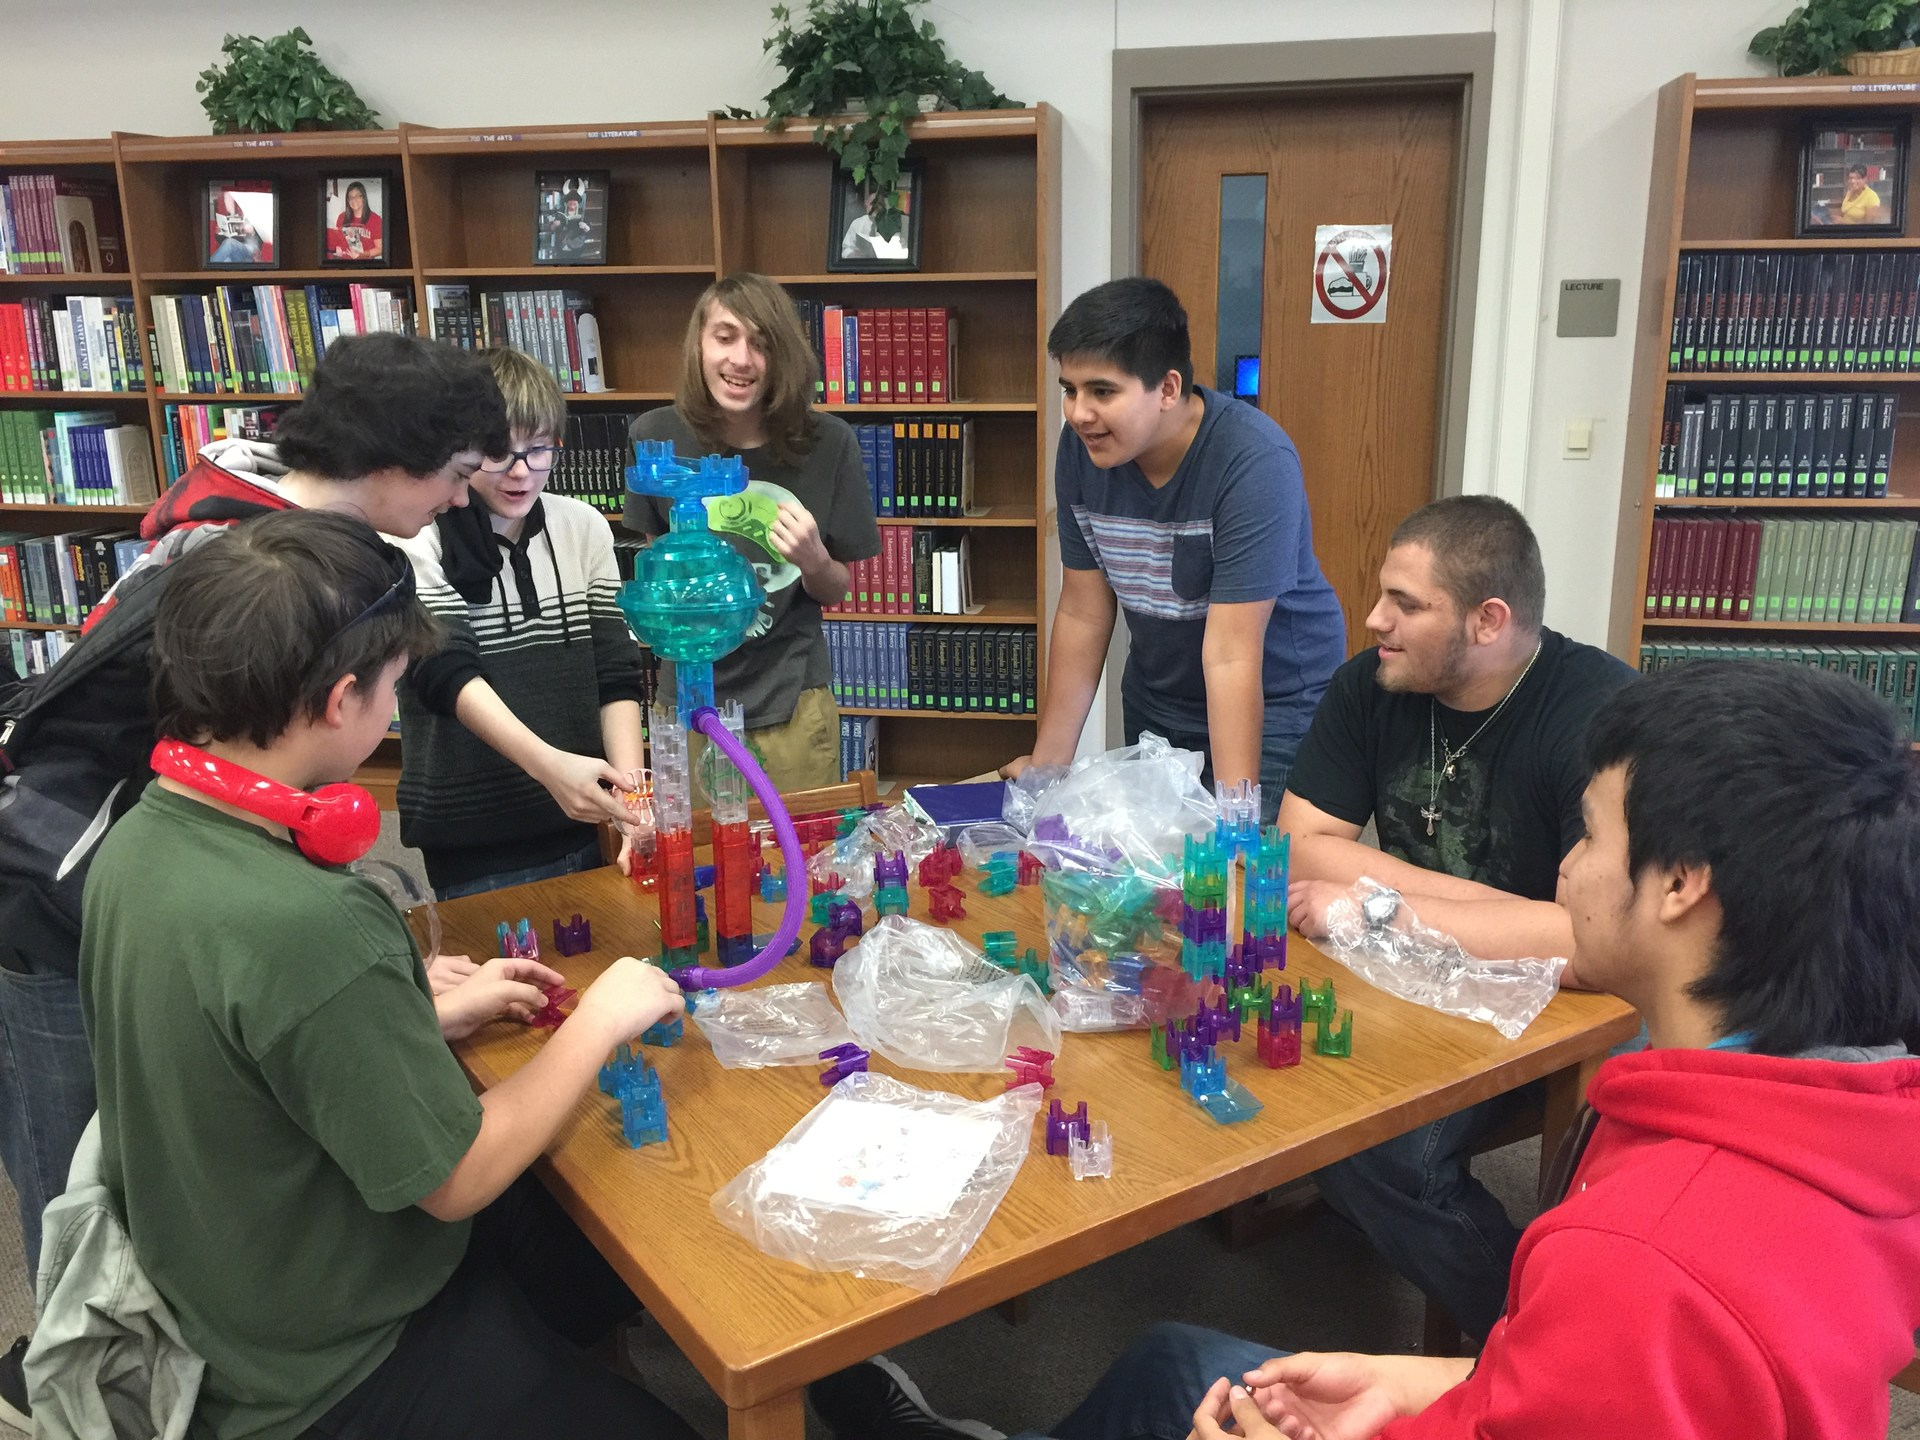 maker space mania